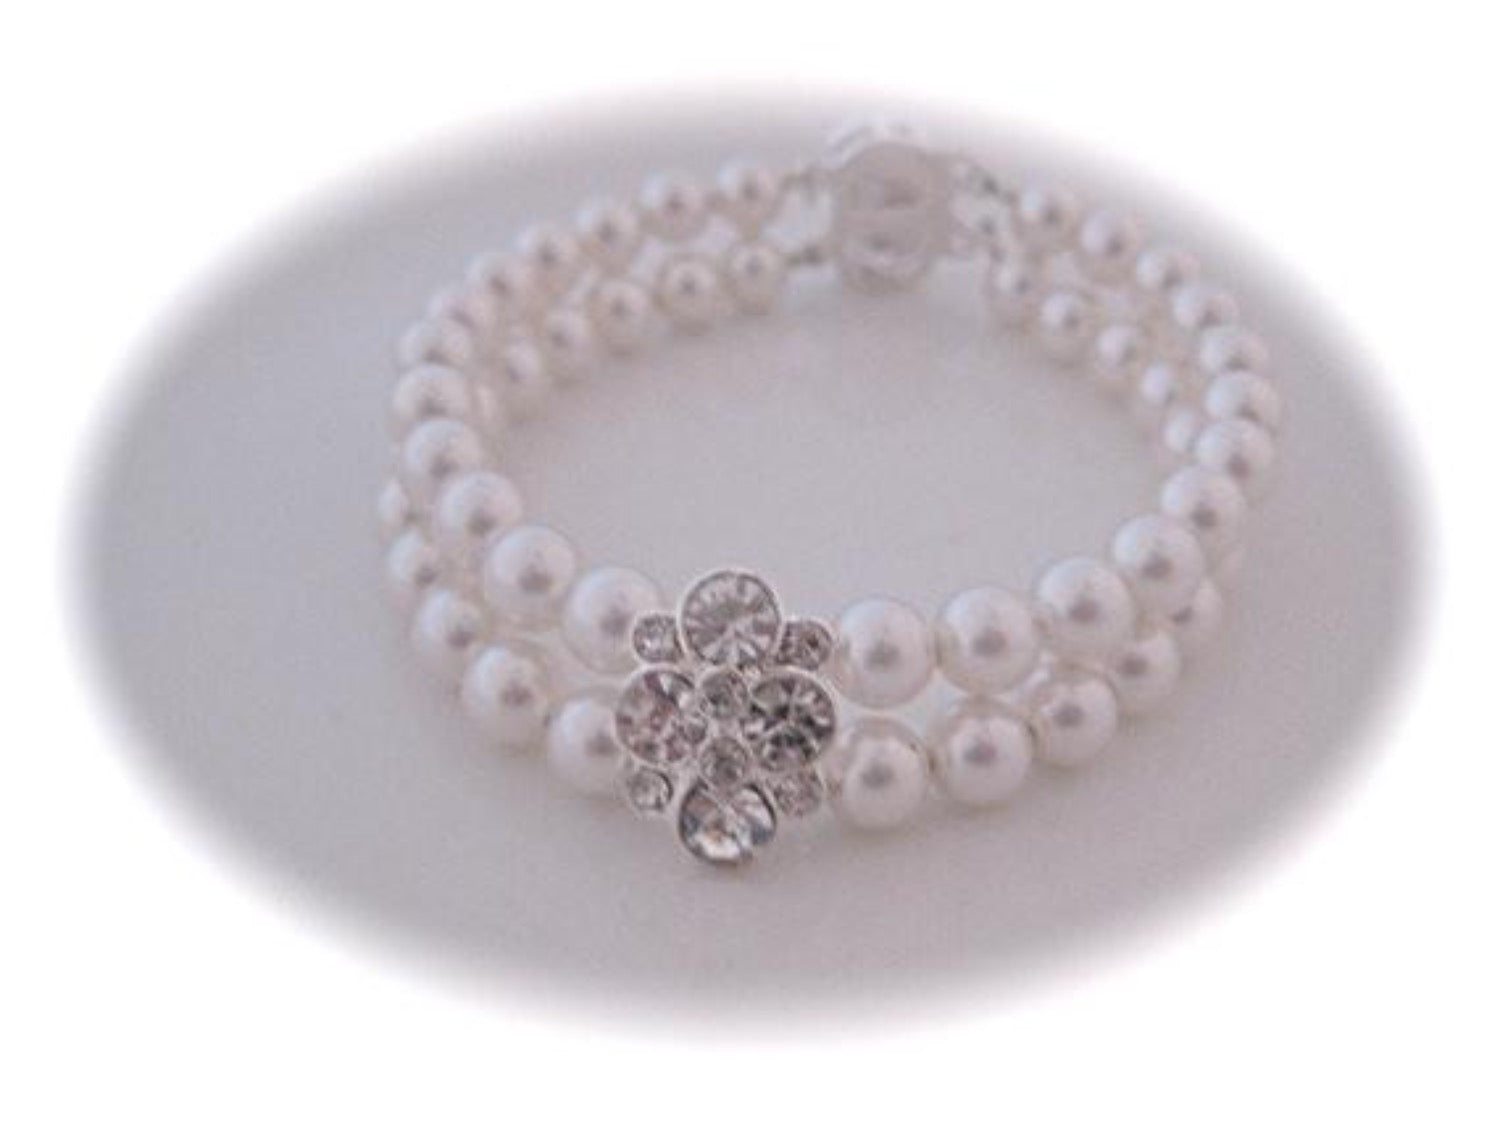 Wedding Jewelry, Pearl bracelet, Cubic zirconia Slider, Silver Filigree Clasp - Clairesbridal - 1